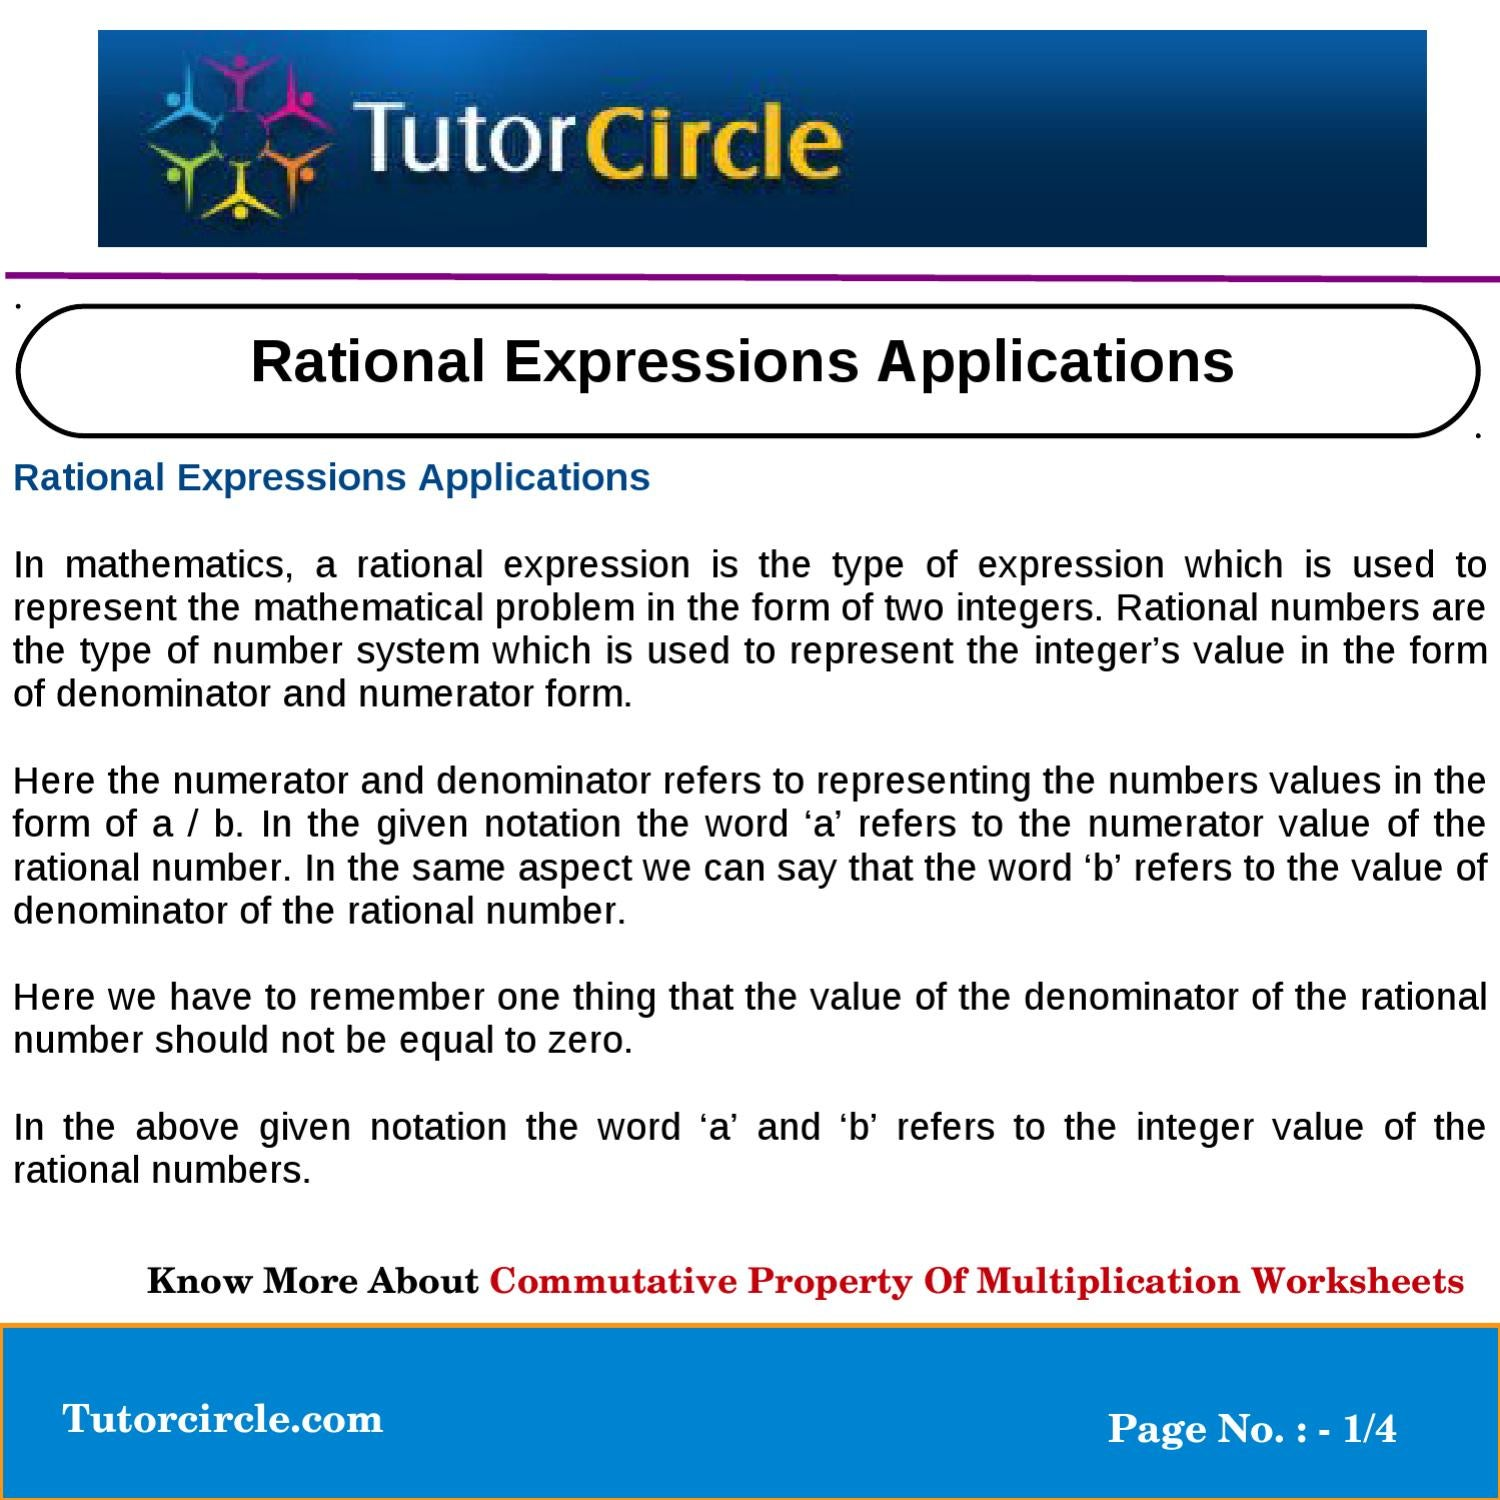 Rational expressions applications by tutorcircle team issuu ibookread Download